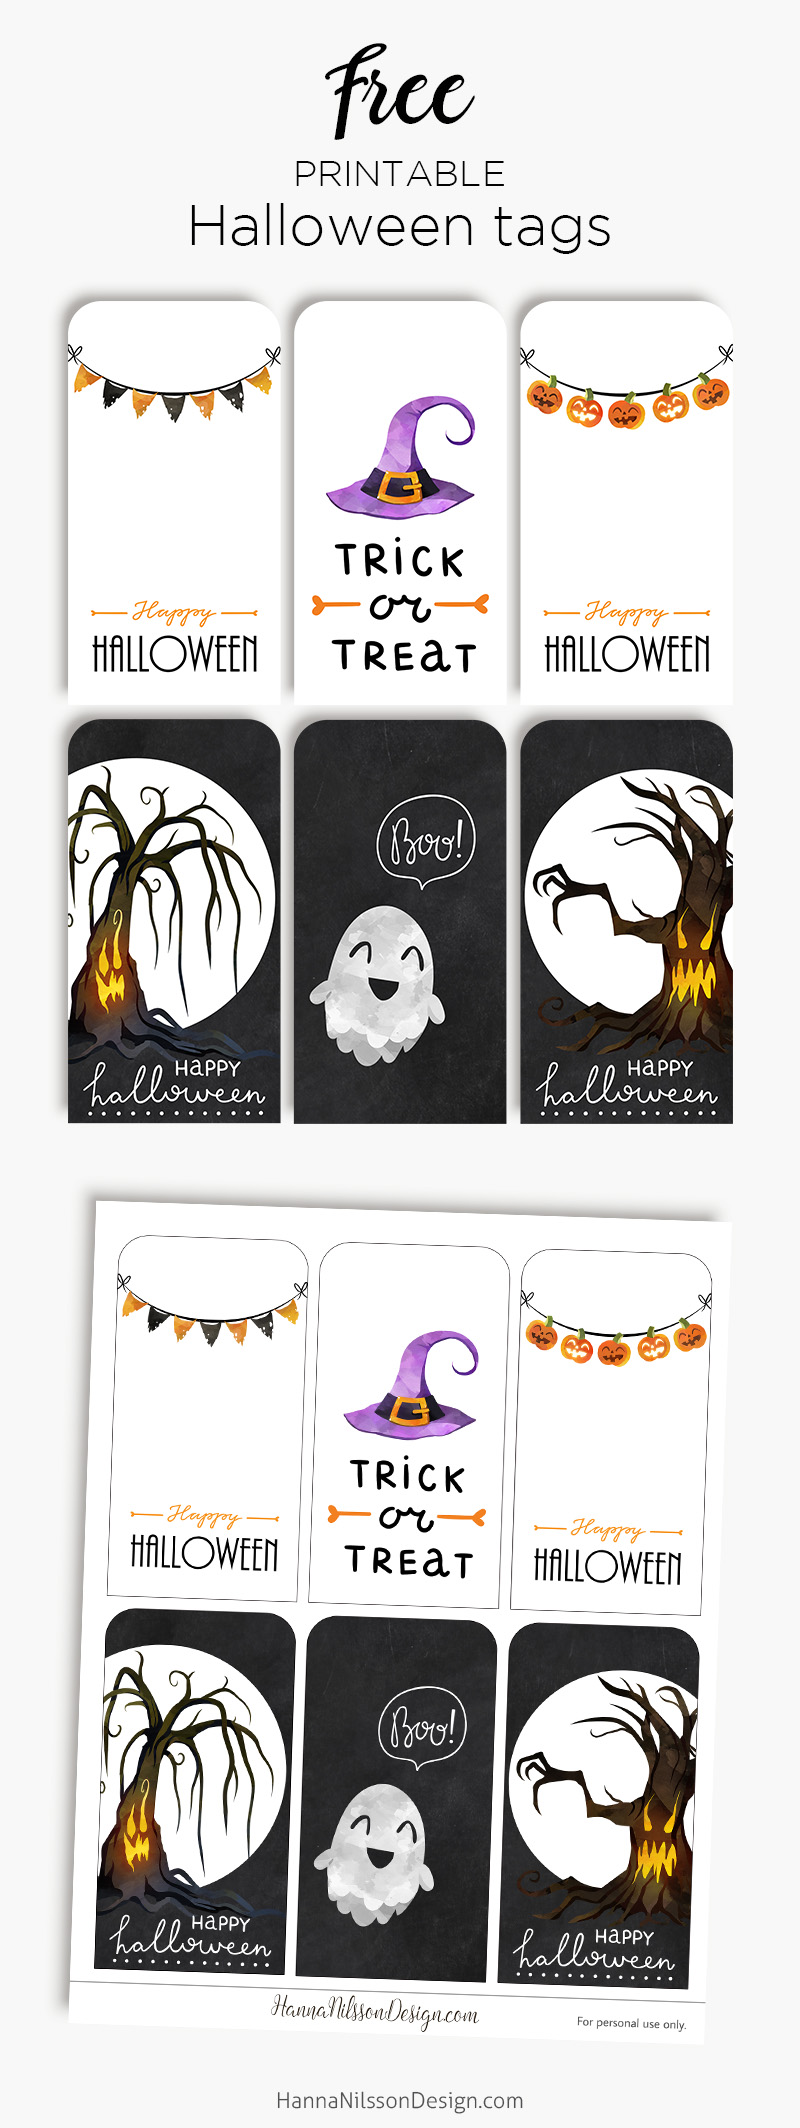 photo regarding Printable Halloween Tags known as Delighted Halloween tags No cost printable creepy lovable